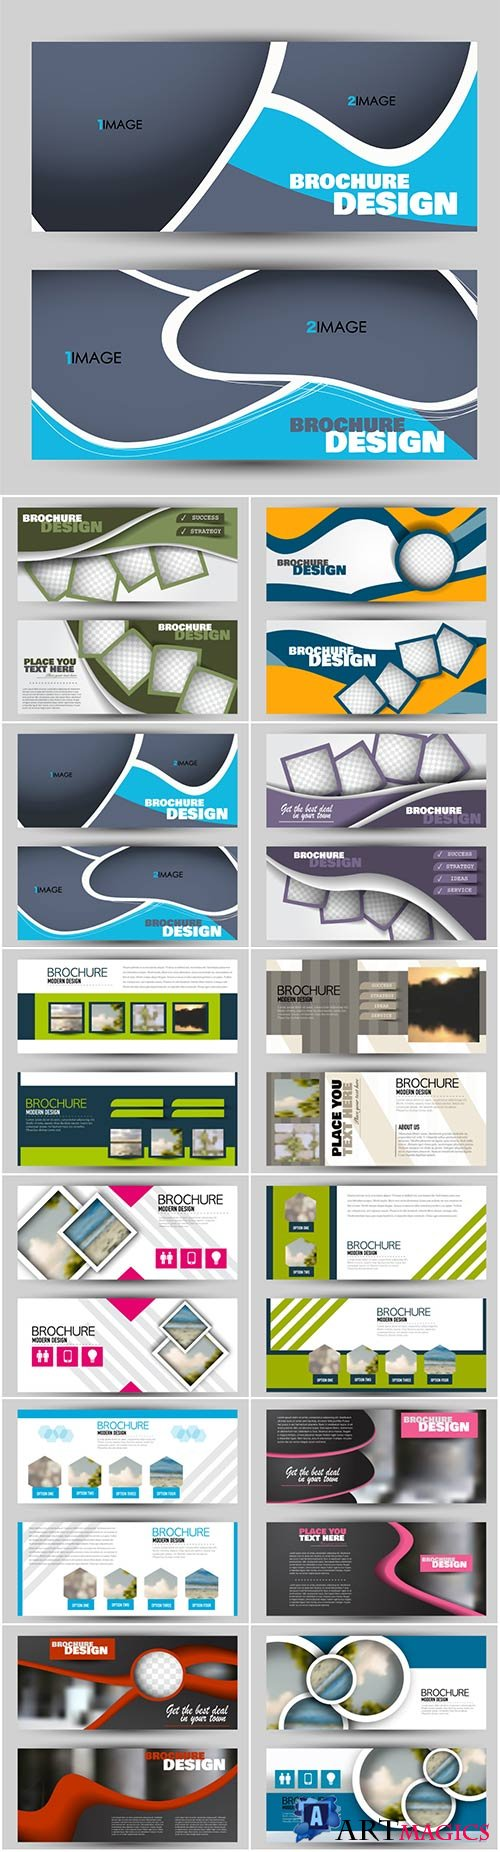 Set of banners for web and advertisement print out, vector horizontal flyer handout design # 5